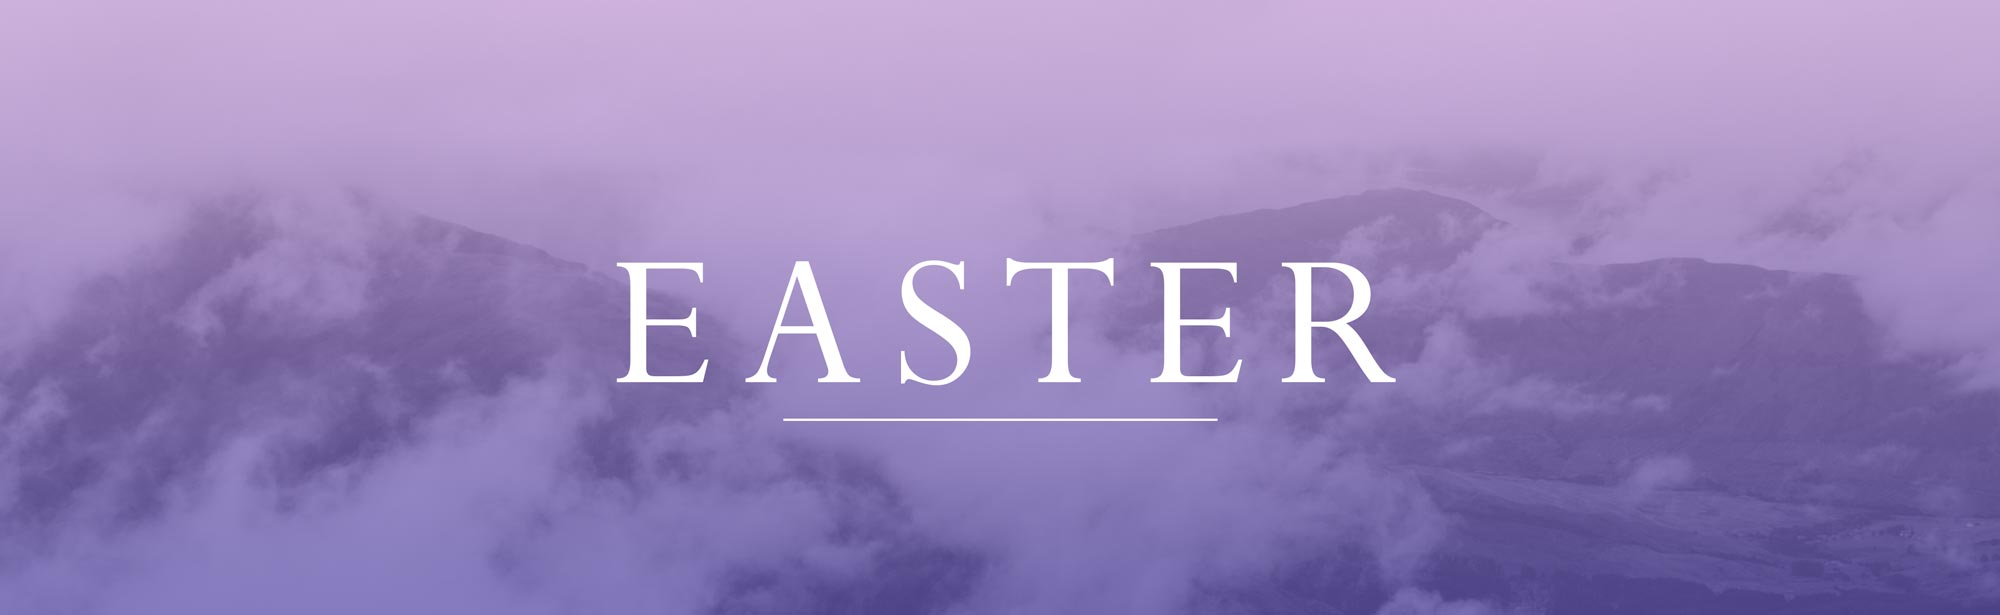 Easter Services Graphic - Sunday, April 1st at 8:30am, 10:30am & 11:00am - Grace Community Church